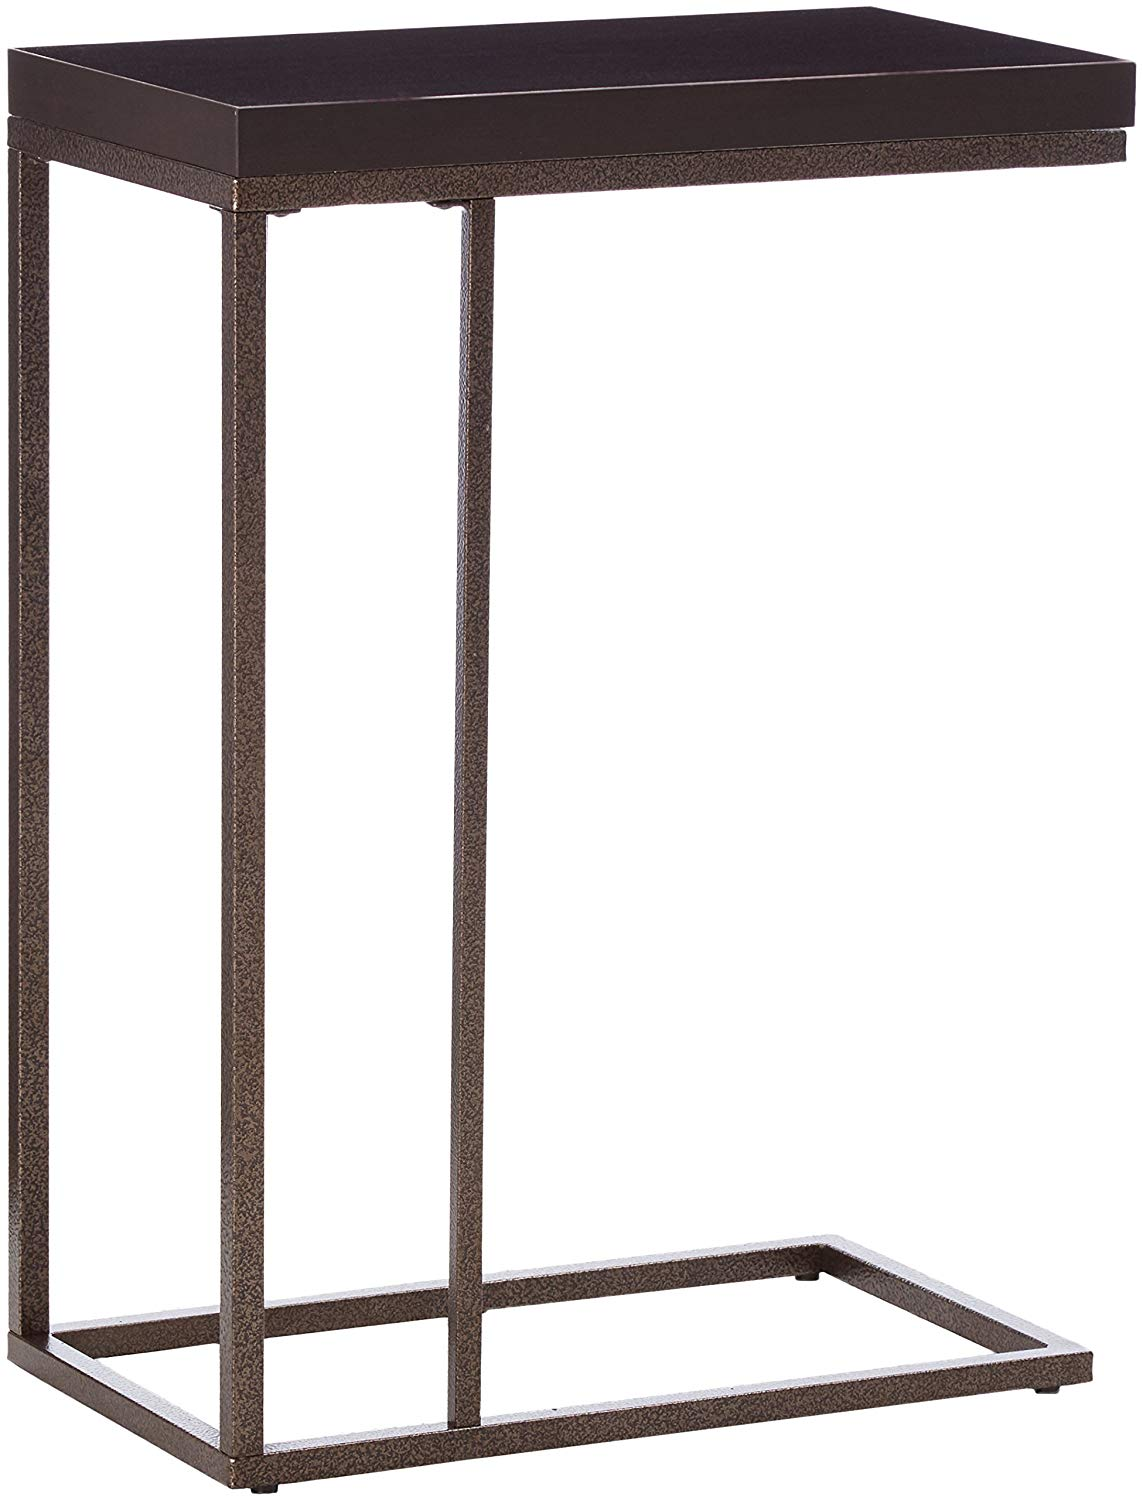 monarch specialties accent table bronze metal cappuccino kitchen dining area furniture storage chest round coffee legs small black desk maritime light fixtures cement simple room